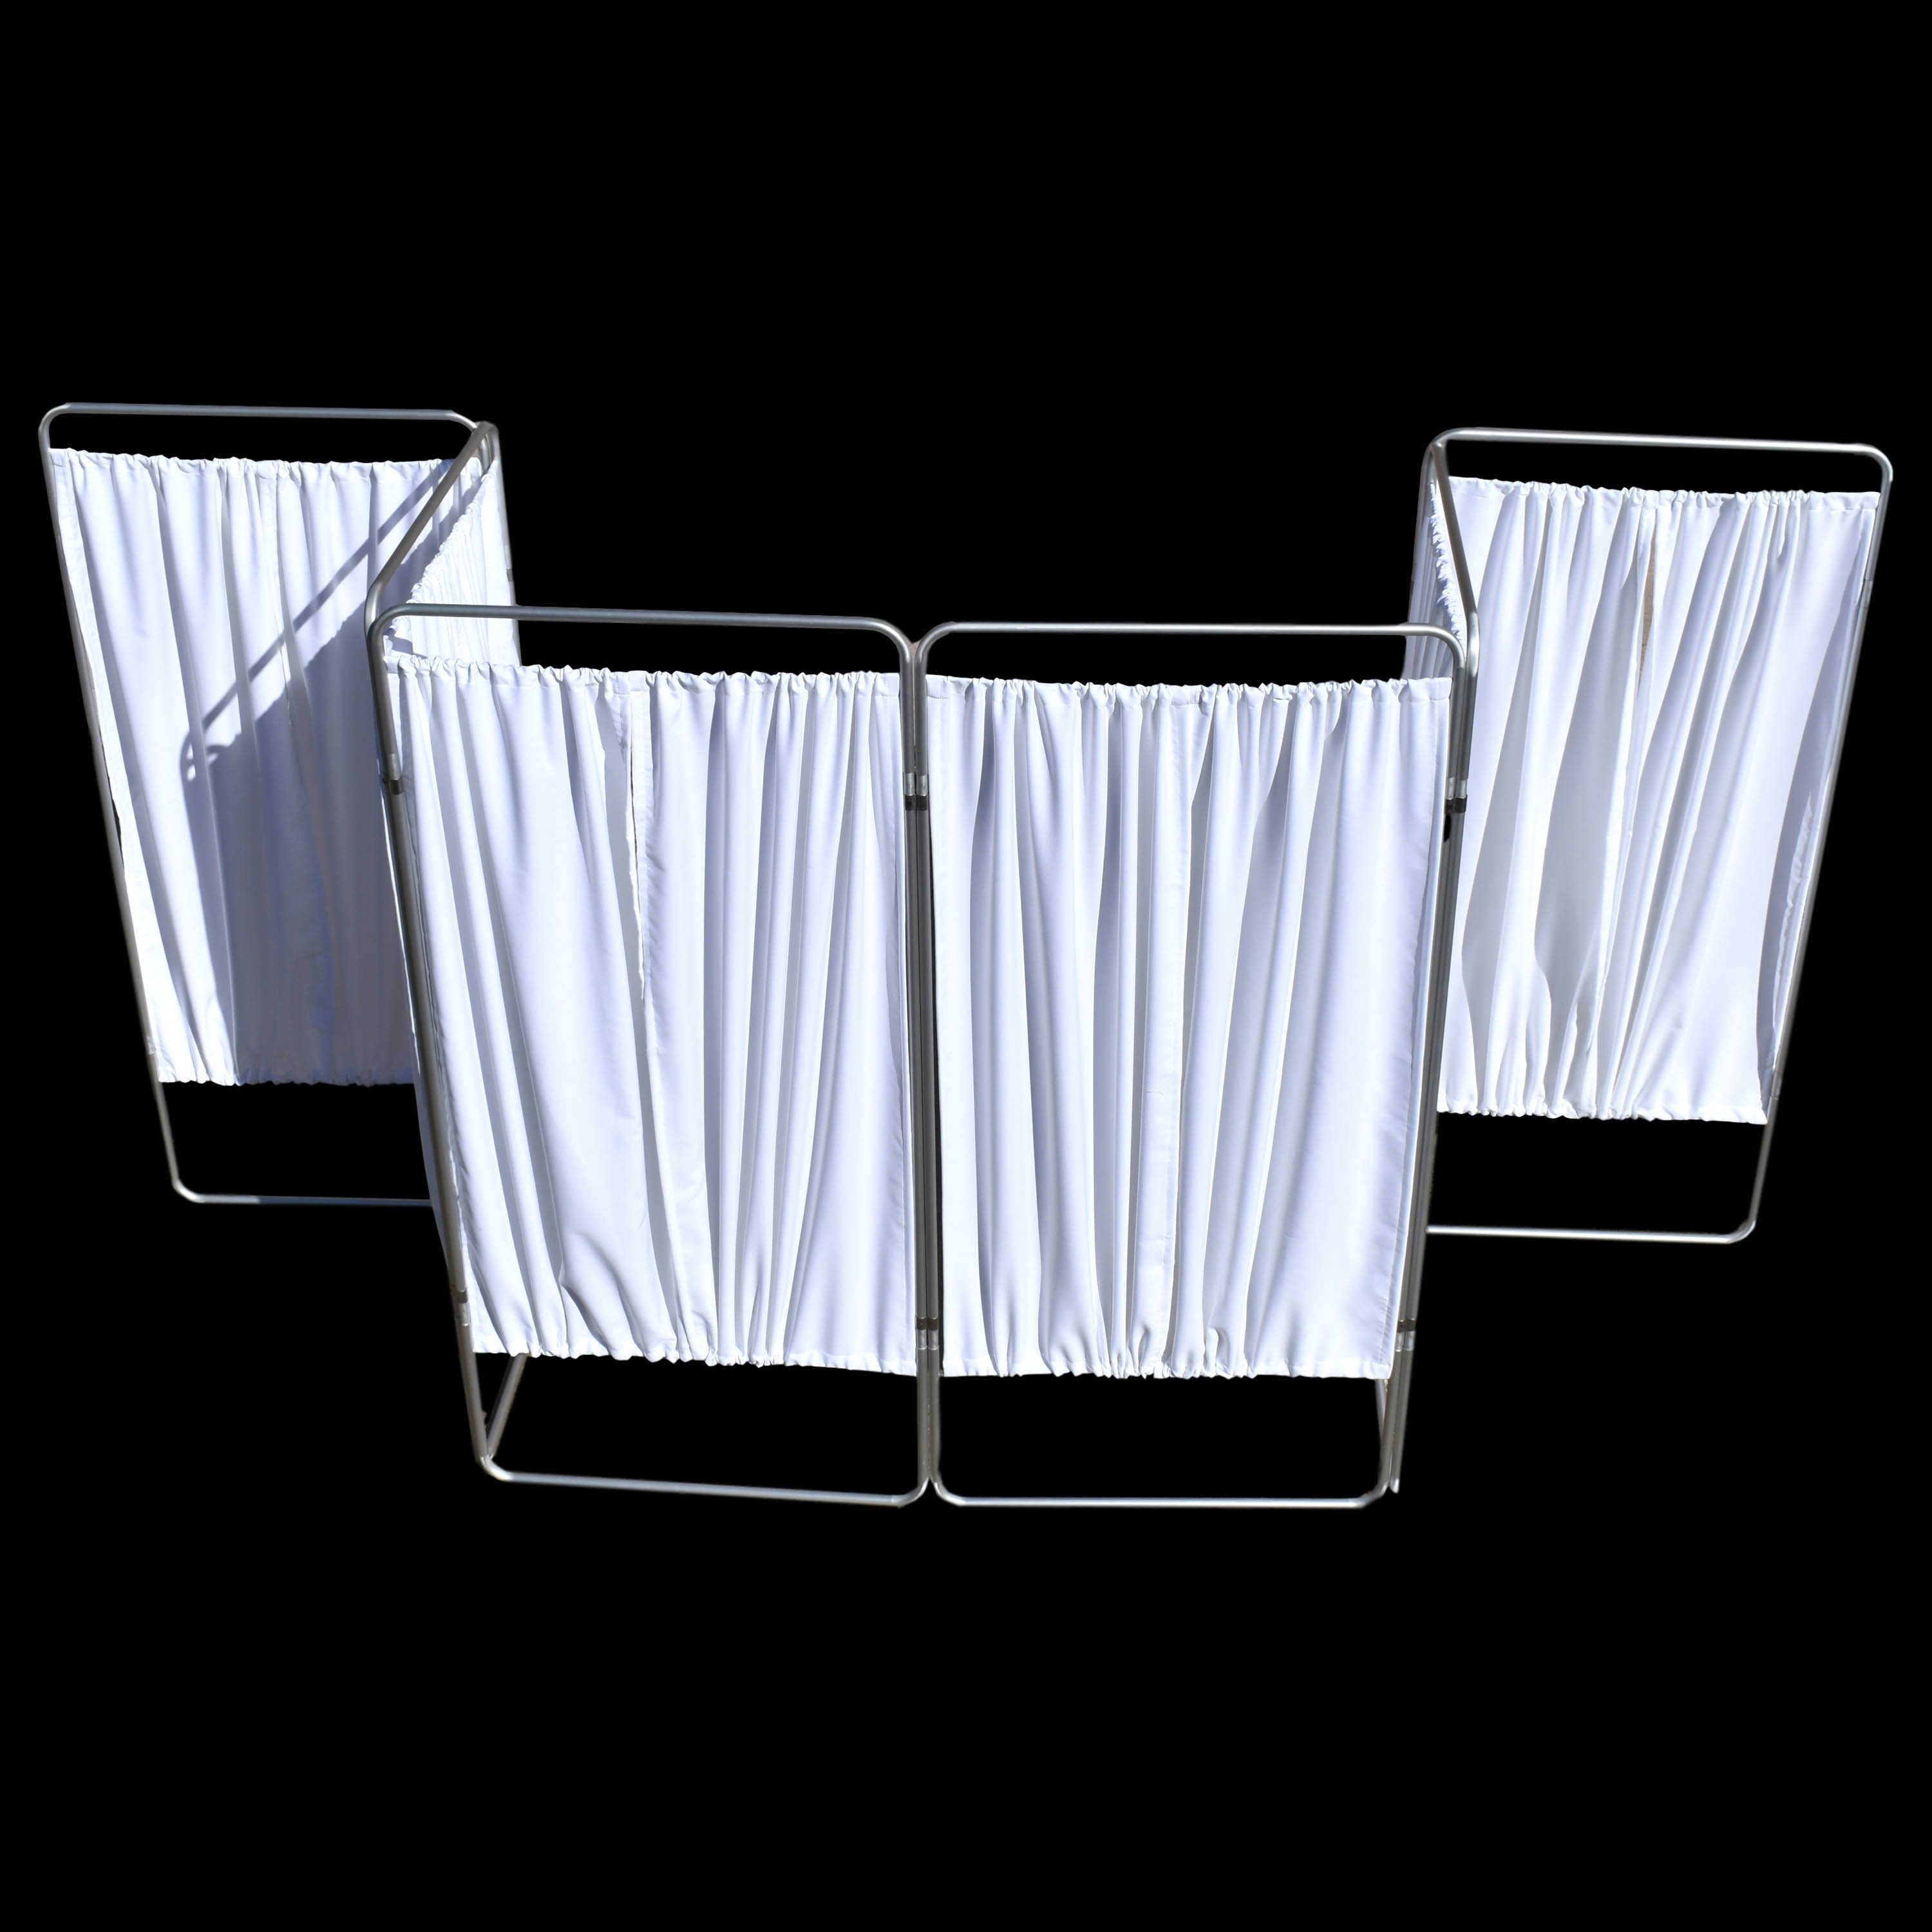 King Economy Privacy Screen with U-Hinge and White Vinyl Panel - 6 Section